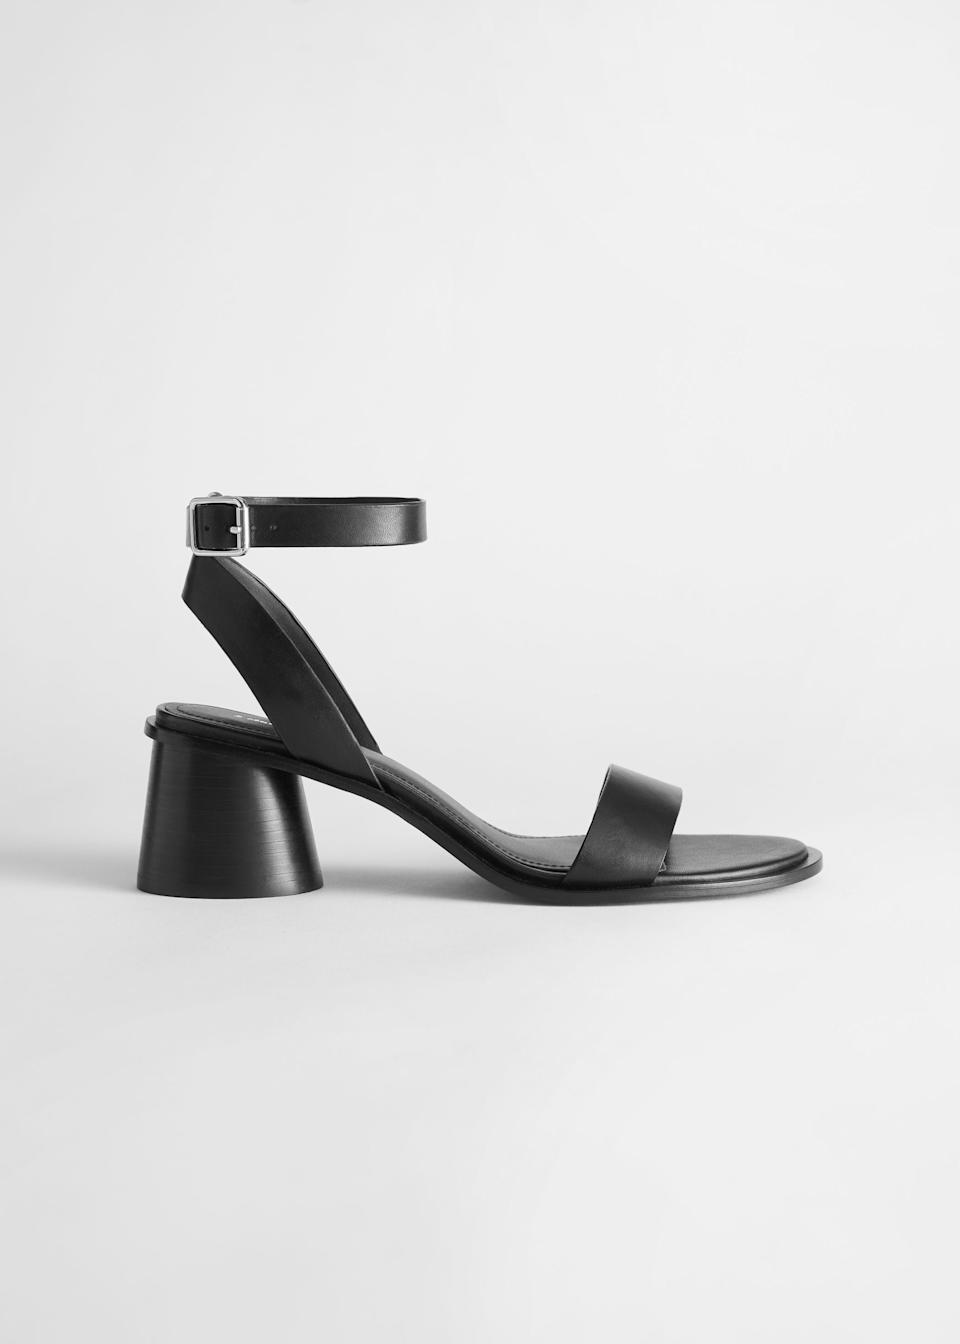 """<h2>& Other Stories</h2><br><strong>Deal</strong>: <strong>Up To 70% Off</strong><br>The brand's up-to-70% off sale is selling out fast, but there are still a handful of classic heeled sandals to be snapped up for summer. Think strappy black block-heeled numbers and a <a href=""""https://www.stories.com/en_usd/shoes/heeled-sandals/product.duo-strap-leather-heeled-sandals-blue.0851470003.html"""" rel=""""nofollow noopener"""" target=""""_blank"""" data-ylk=""""slk:slip-on mule style"""" class=""""link rapid-noclick-resp"""">slip-on mule style</a> or two.<br><br><em>Shop <strong><a href=""""https://www.stories.com/en_usd/sale/shoes.html"""" rel=""""nofollow noopener"""" target=""""_blank"""" data-ylk=""""slk:& Other Stories"""" class=""""link rapid-noclick-resp"""">& Other Stories</a></strong></em><br><br><strong>& Other Stories</strong> Strappy Block Heel Leather Sandal, $, available at <a href=""""https://go.skimresources.com/?id=30283X879131&url=https%3A%2F%2Fwww.stories.com%2Fen_usd%2Fshoes%2Fheeled-sandals%2Fproduct.strappy-block-heel-leather-sandal-black.0853219001.html"""" rel=""""nofollow noopener"""" target=""""_blank"""" data-ylk=""""slk:& Other Stories"""" class=""""link rapid-noclick-resp"""">& Other Stories</a>"""